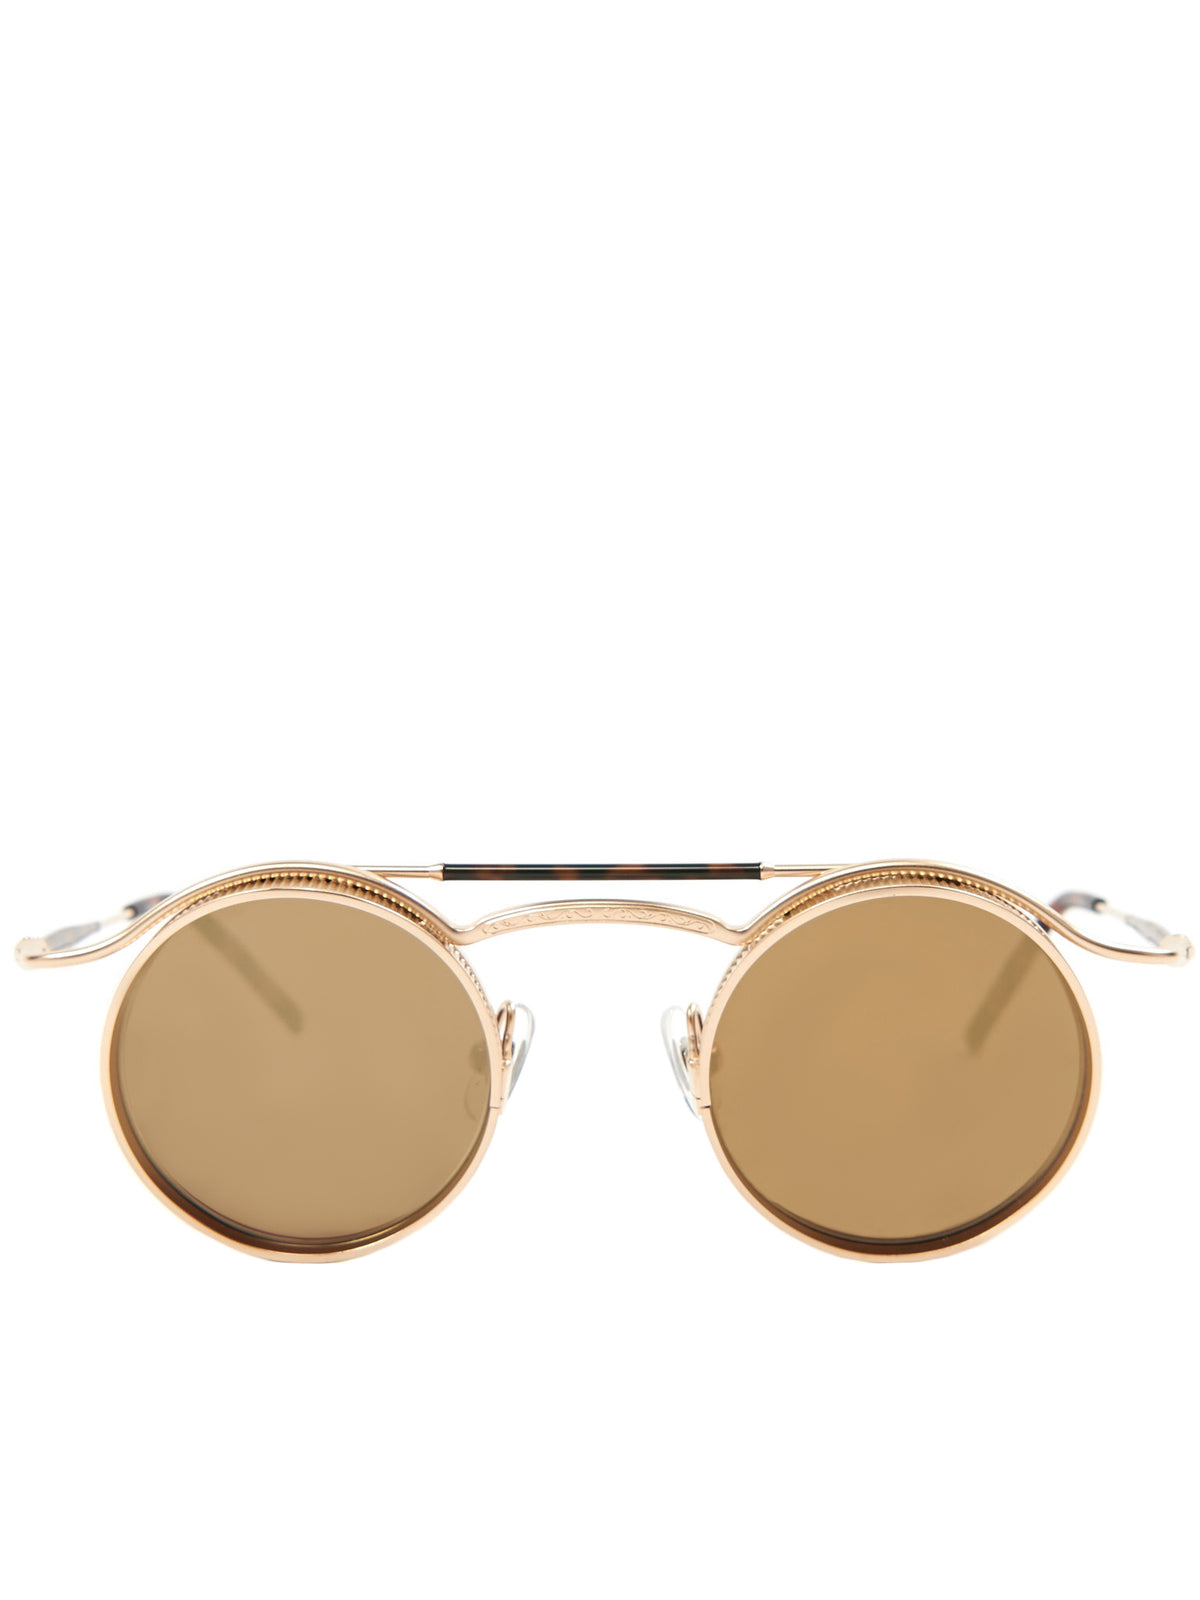 2903H Matte Gold Sunglasses (2903H-MATTE-GOLD-PLATED-GOLFD-)